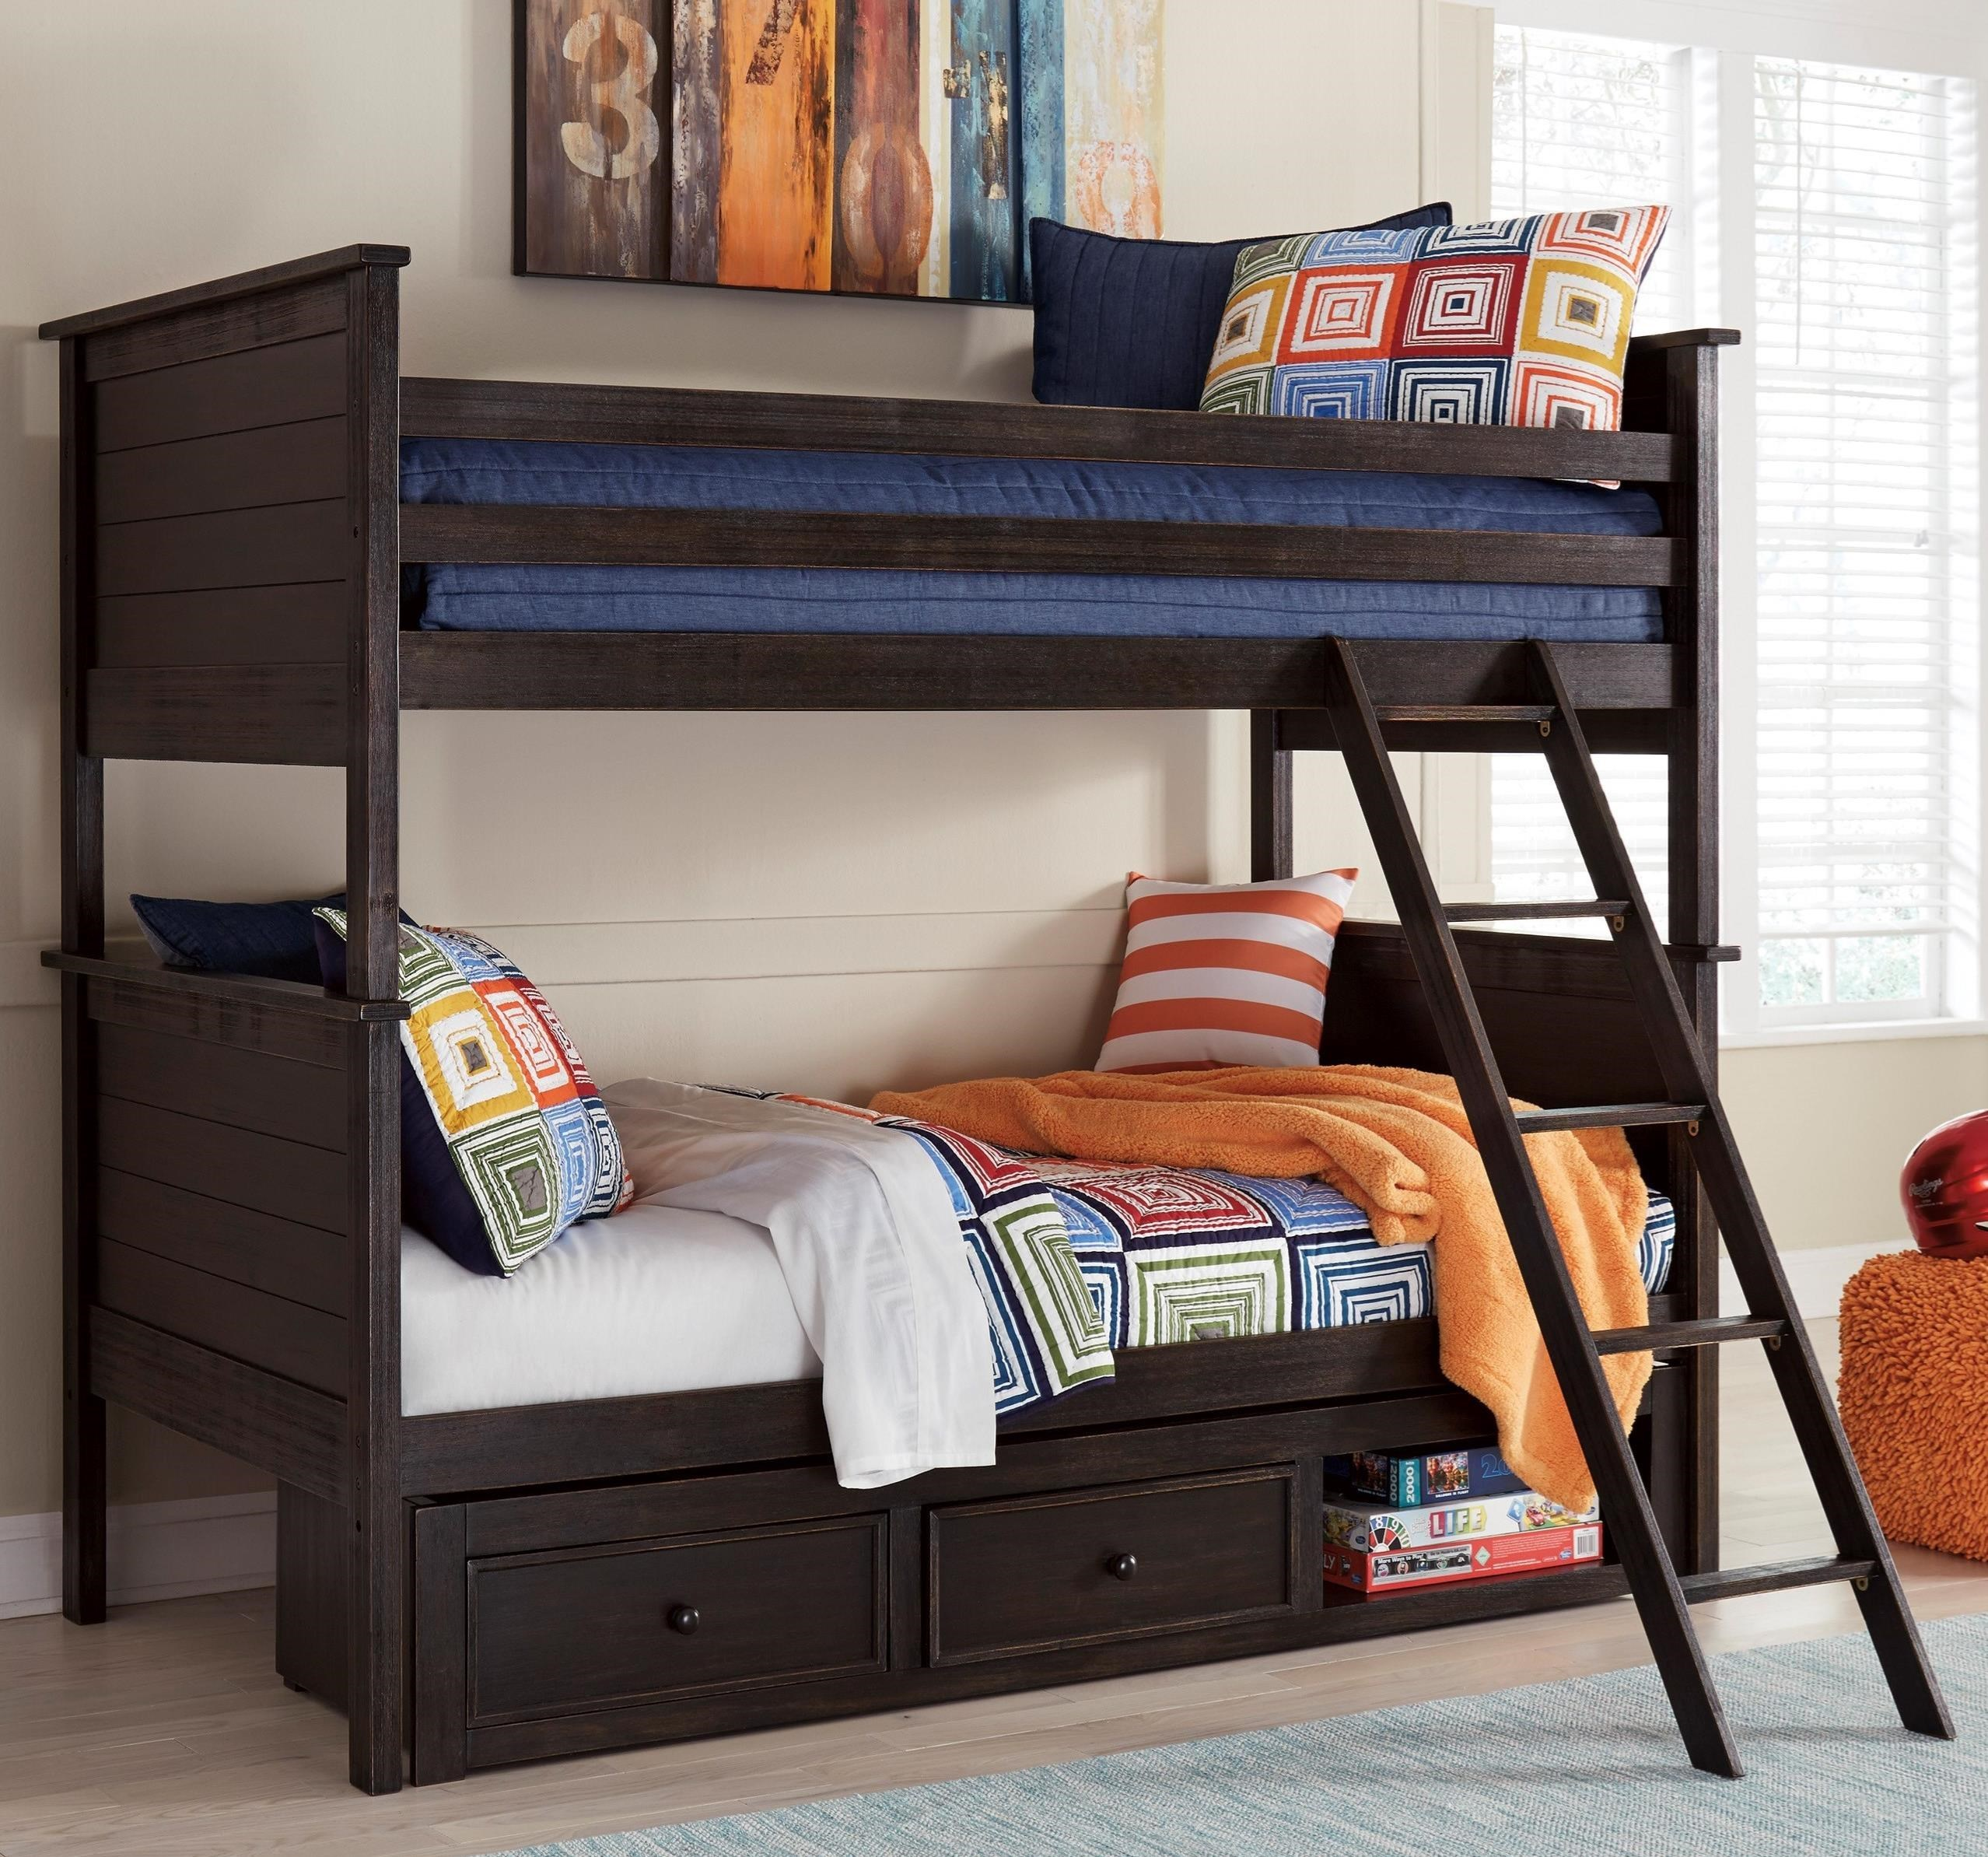 signature design by ashley jaysom twintwin bunk bed with under bed storage